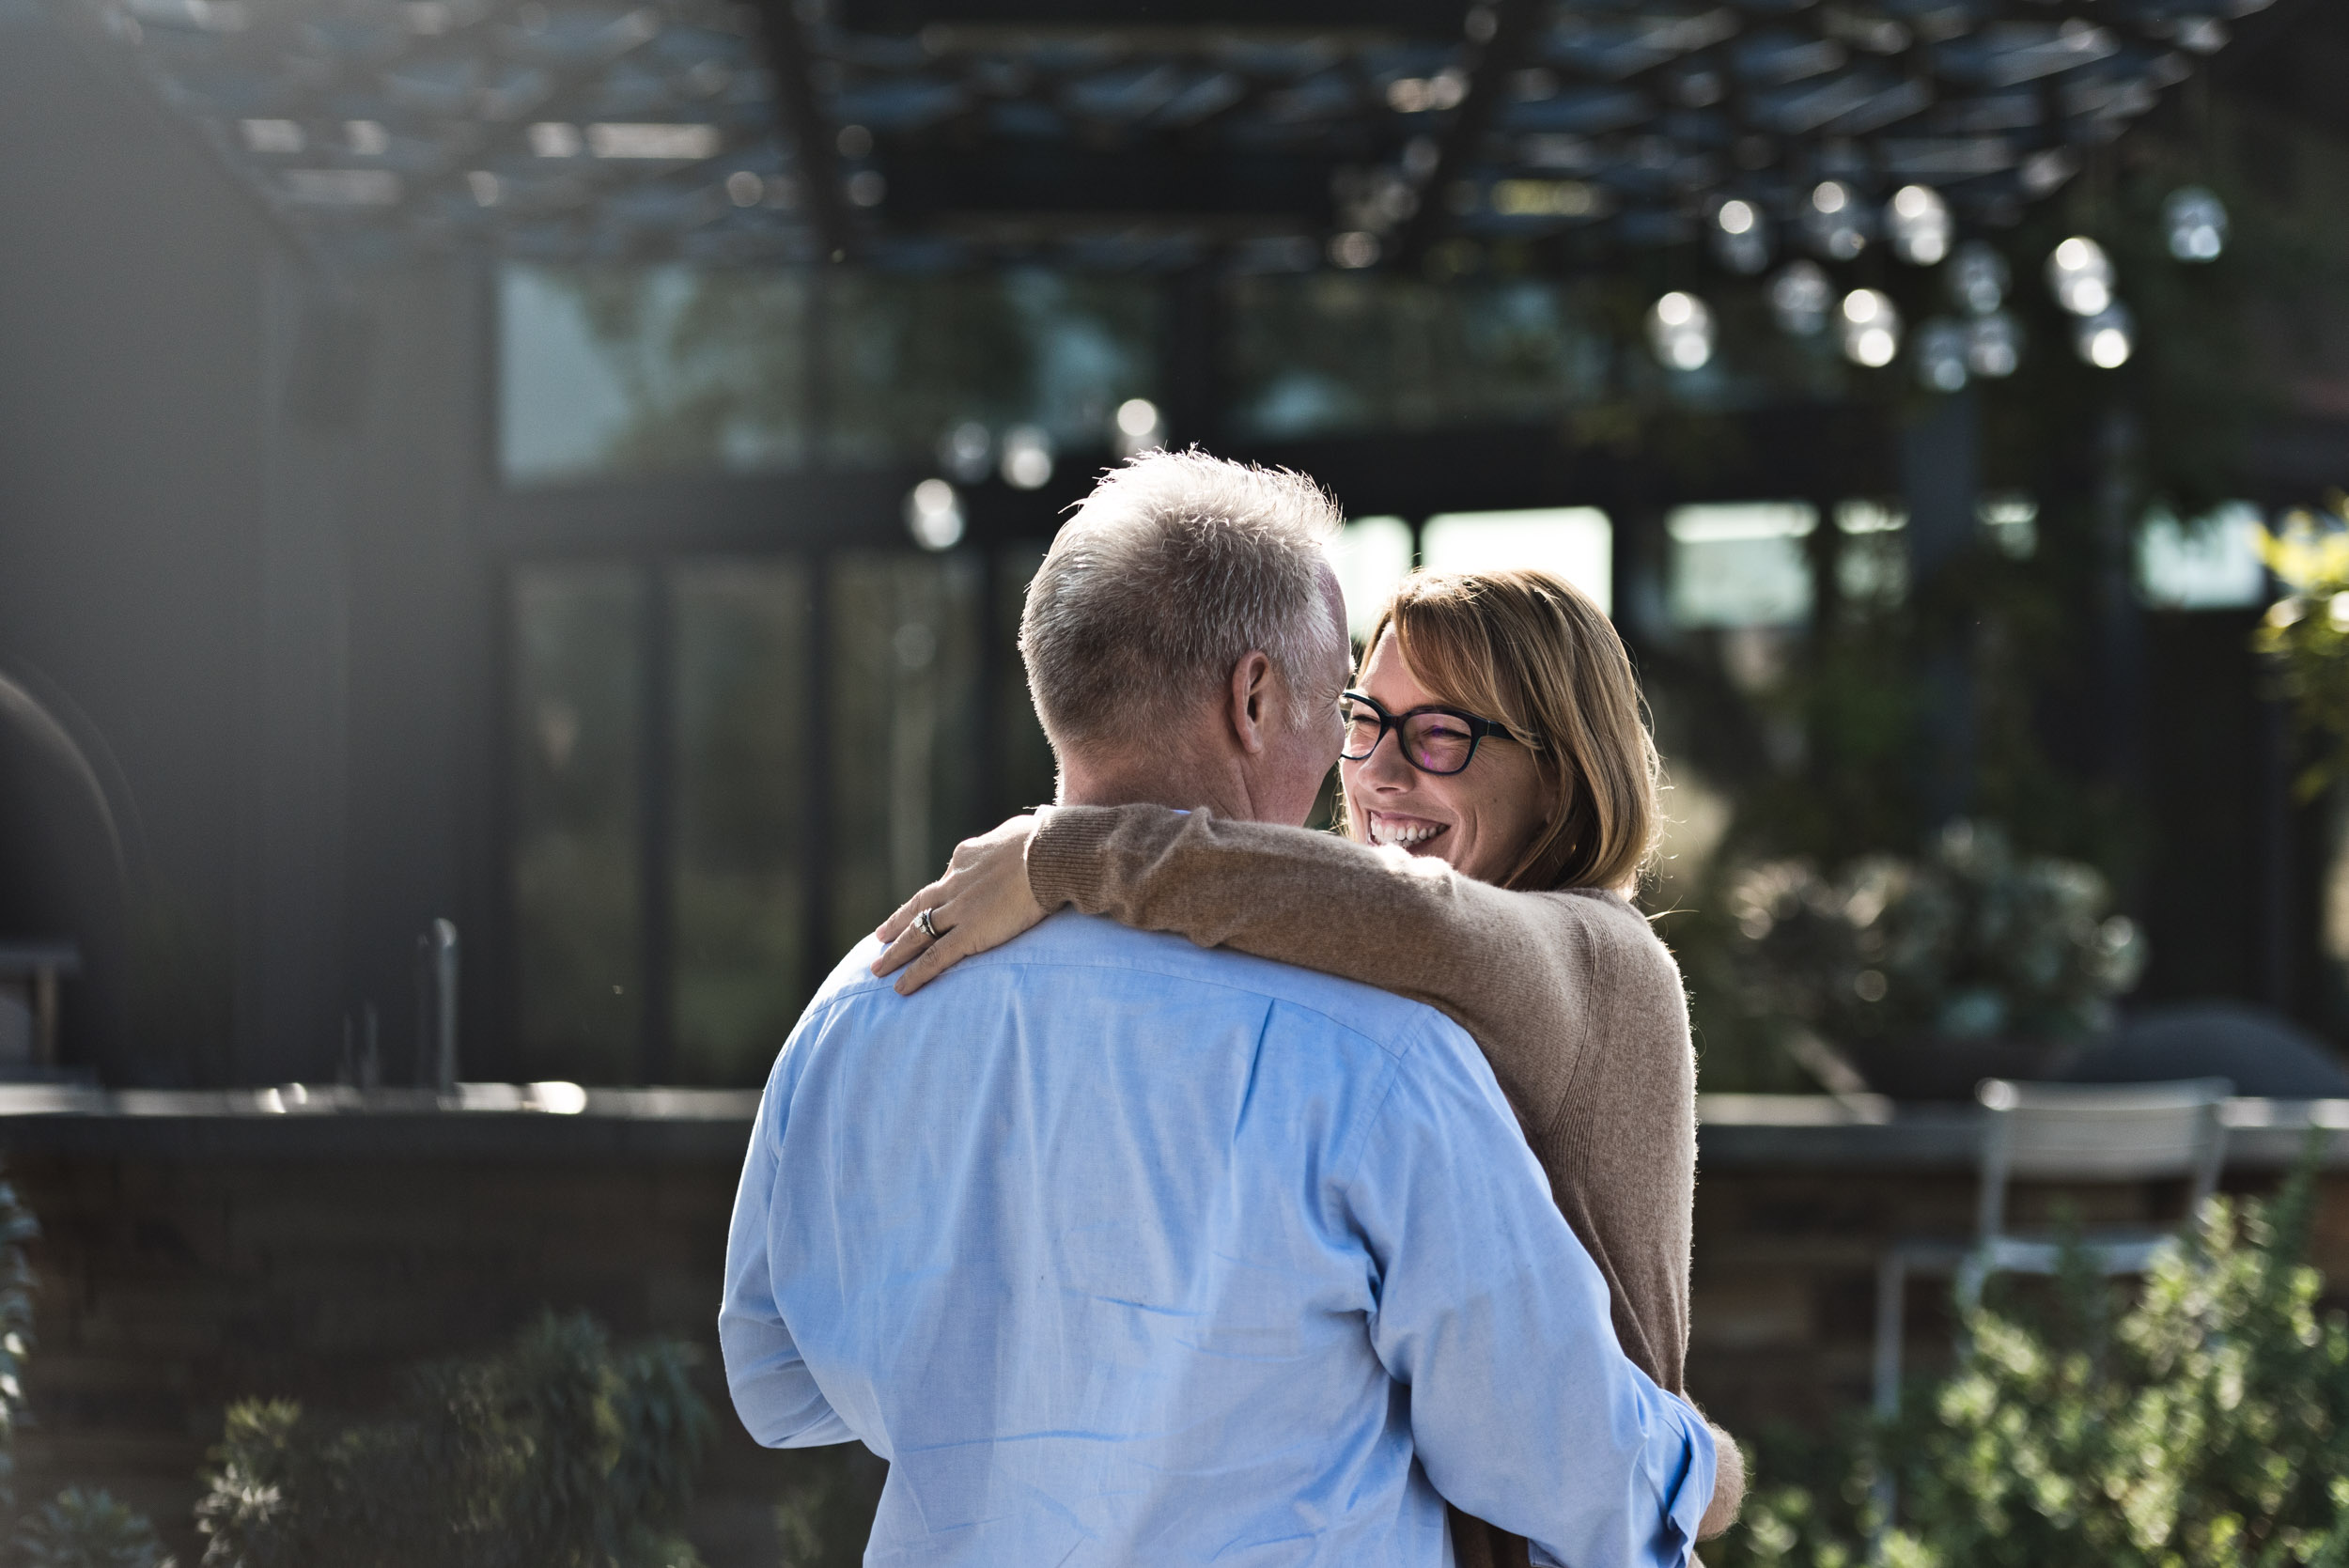 Wife smiling as husband while dancing. Beacon Park in Irvine, California.